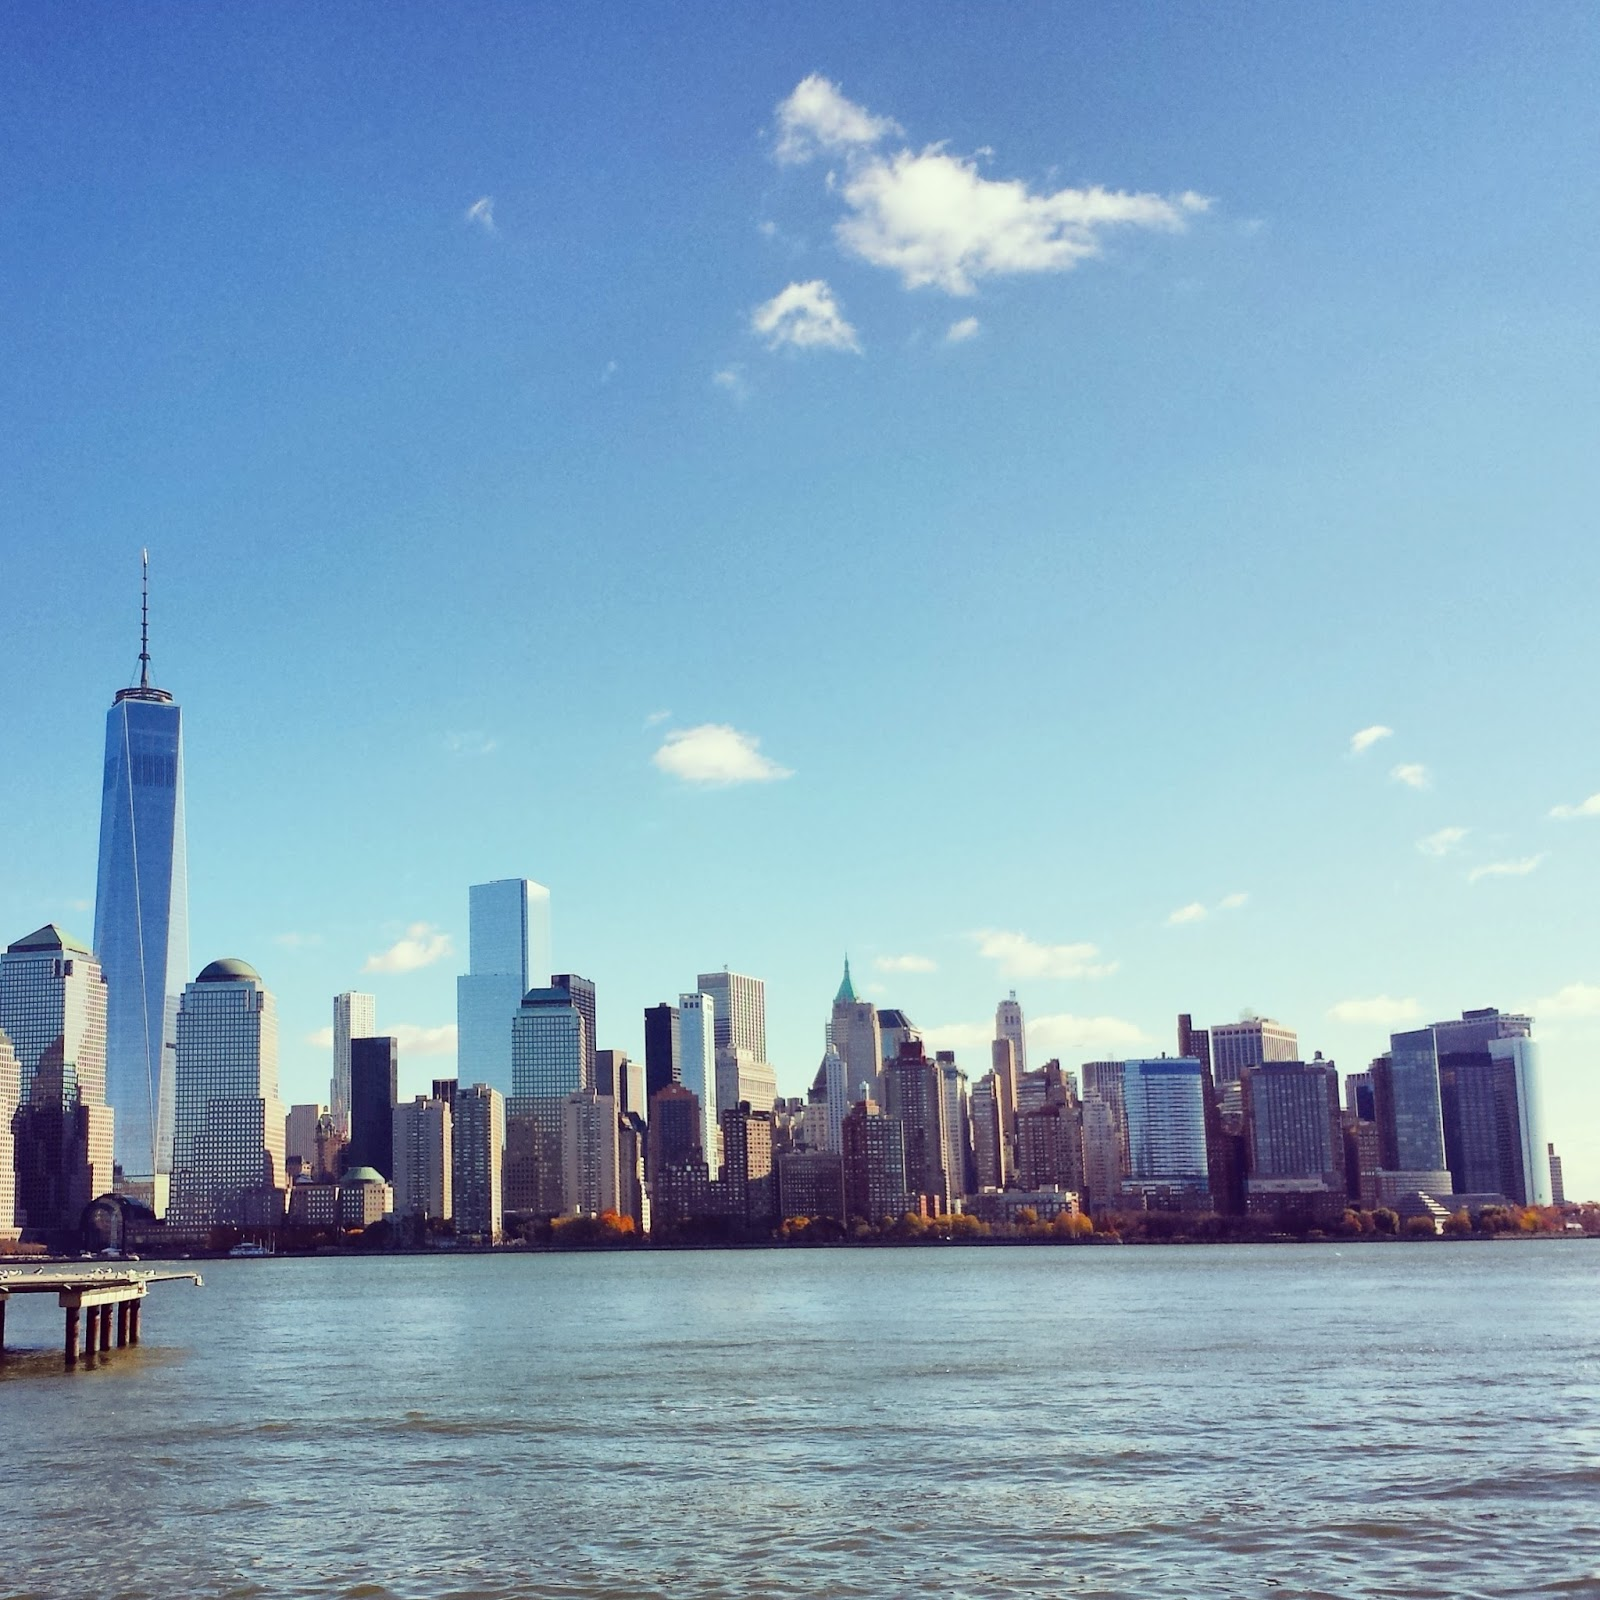 Lower Manhattan + Freedom Tower  |  Across an ocean on afeathery*nest  |  http://afeatherynest.com